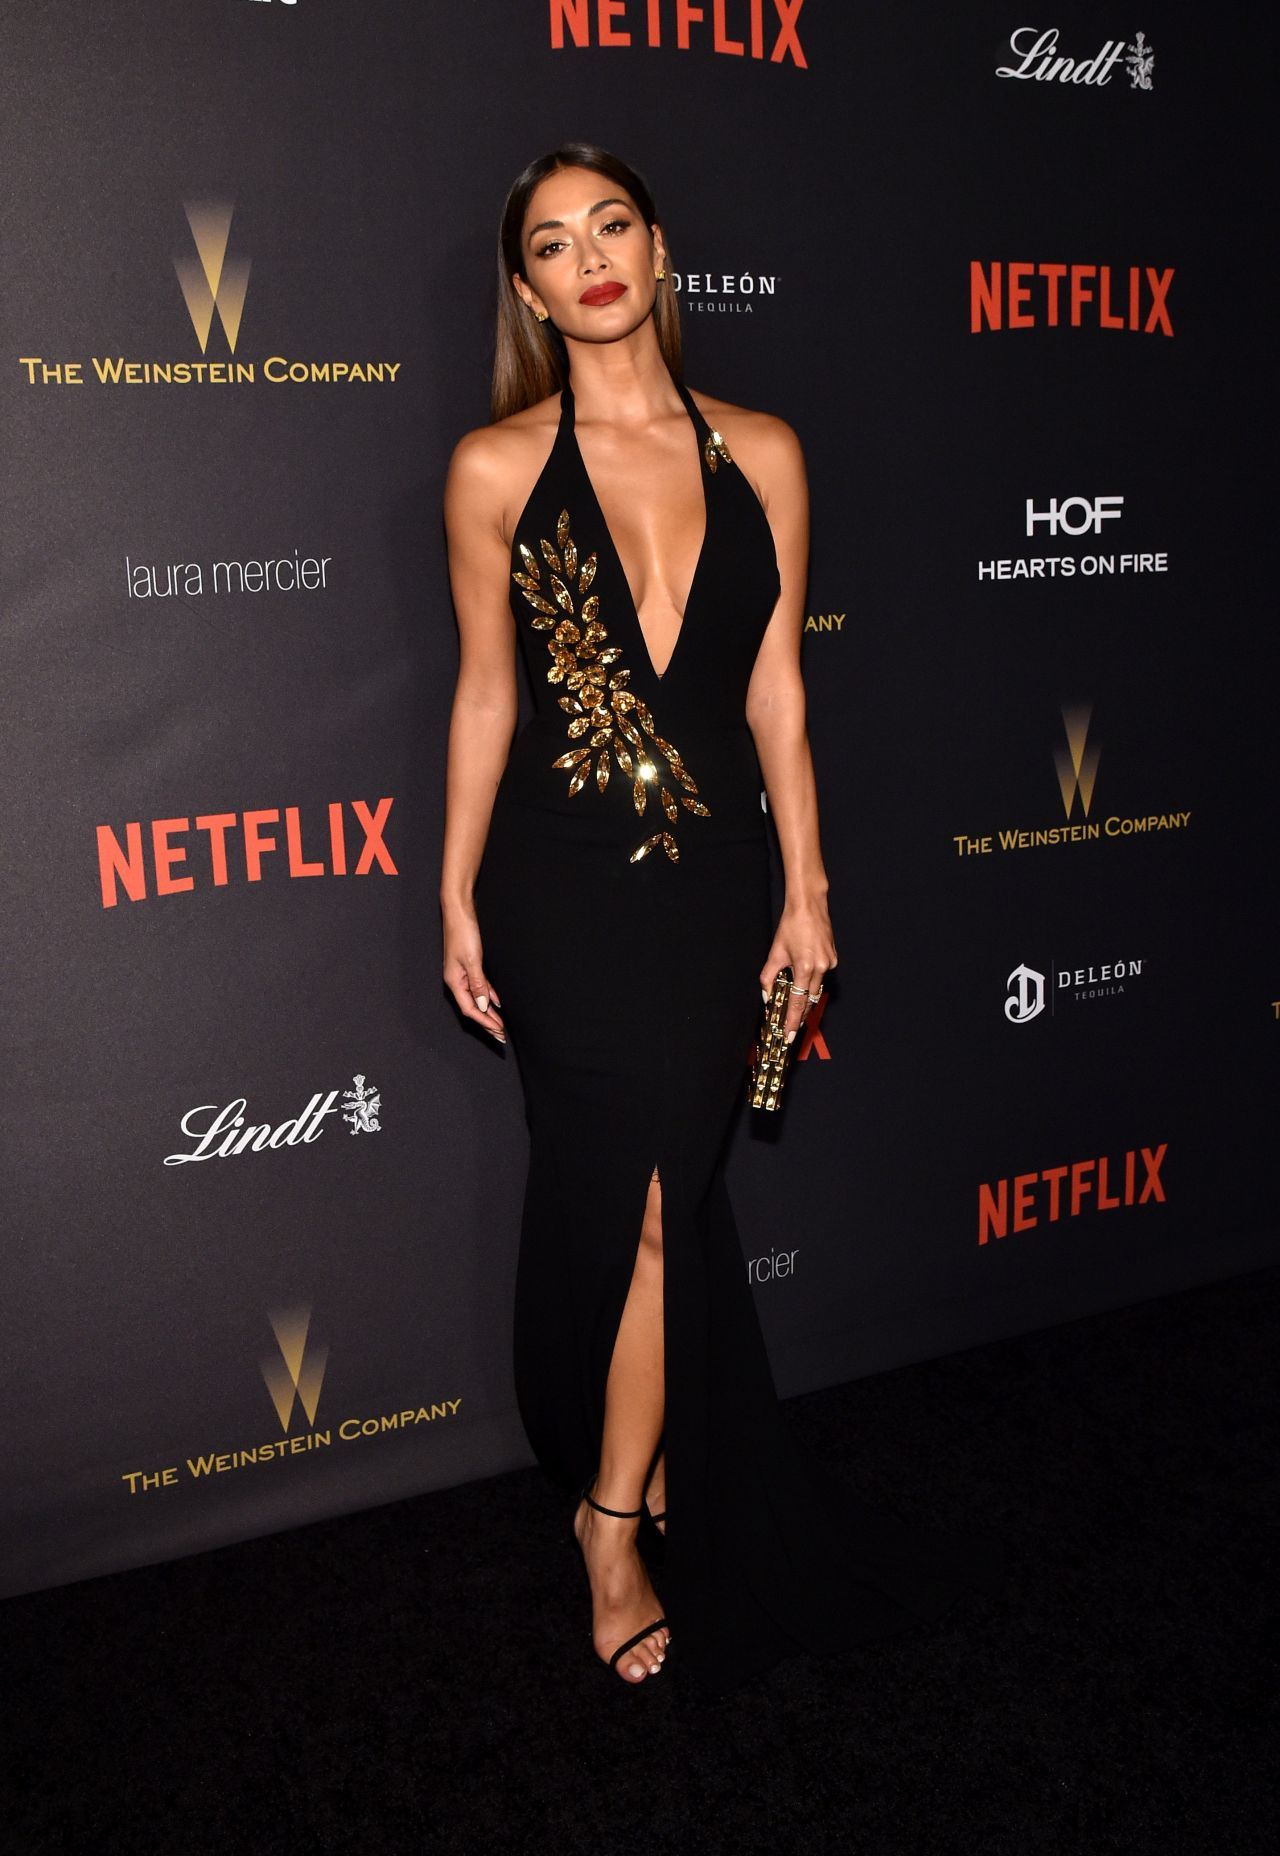 nicole-scherzinger-the-weinstein-company-and-netflix-golden-globe-2016-party-in-beverly-hills-3